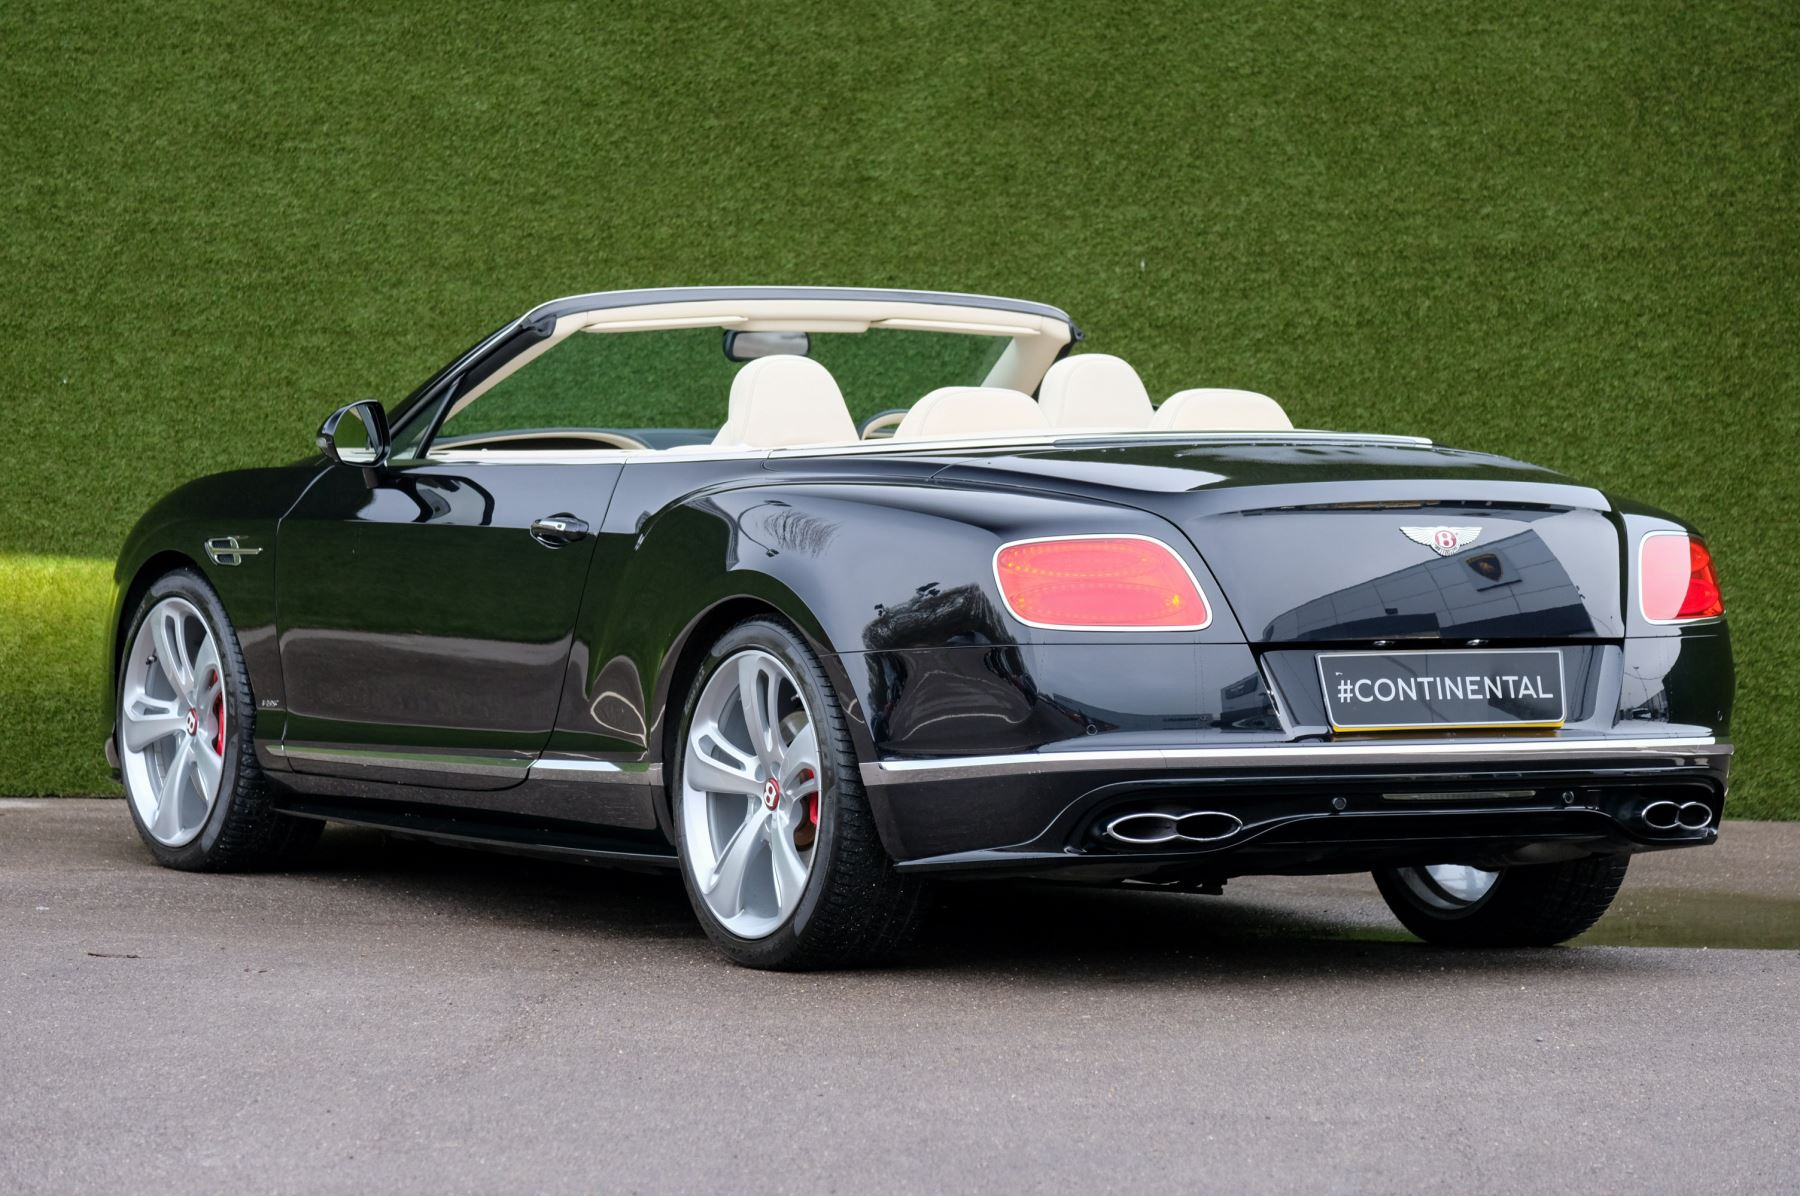 Bentley Continental GTC 4.0 V8 S Mulliner Driving Spec image 5